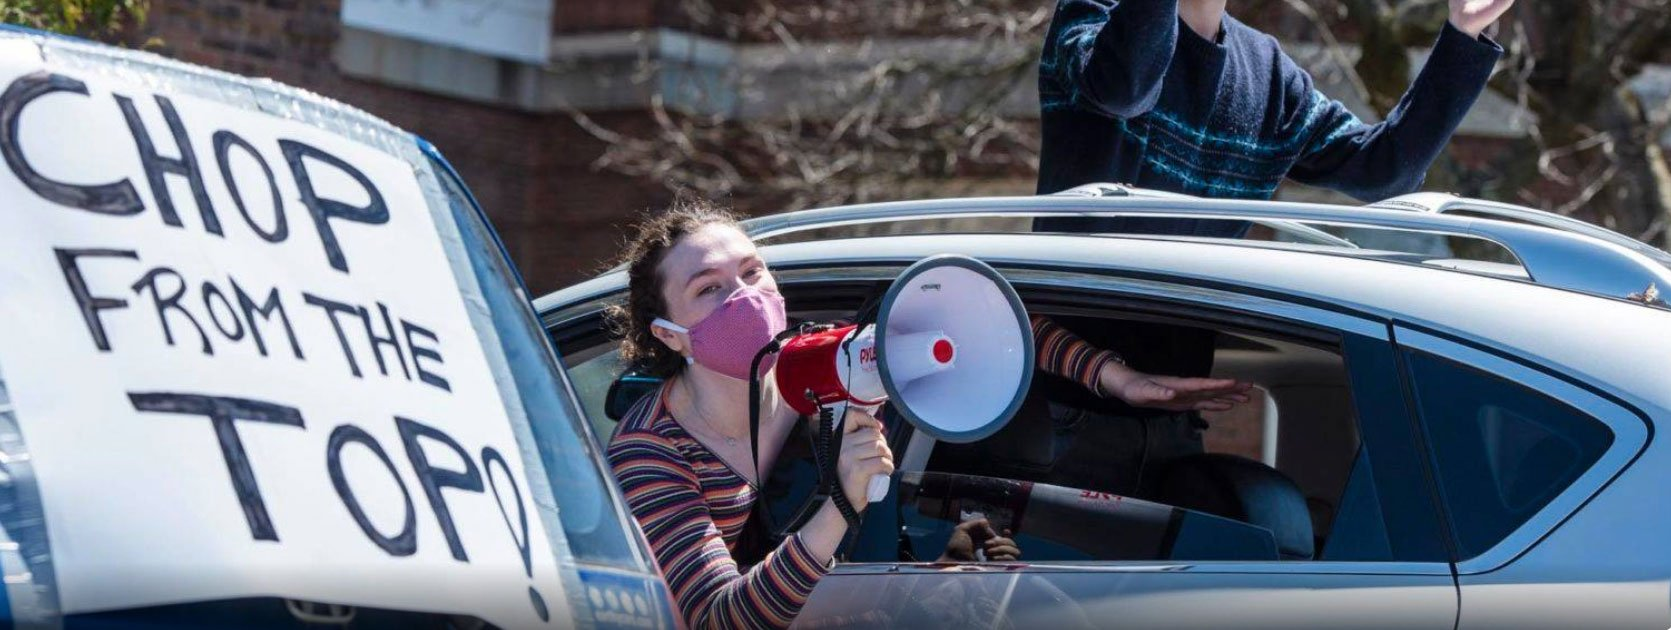 Car rally with UVM students protesting cuts to Liberal Arts